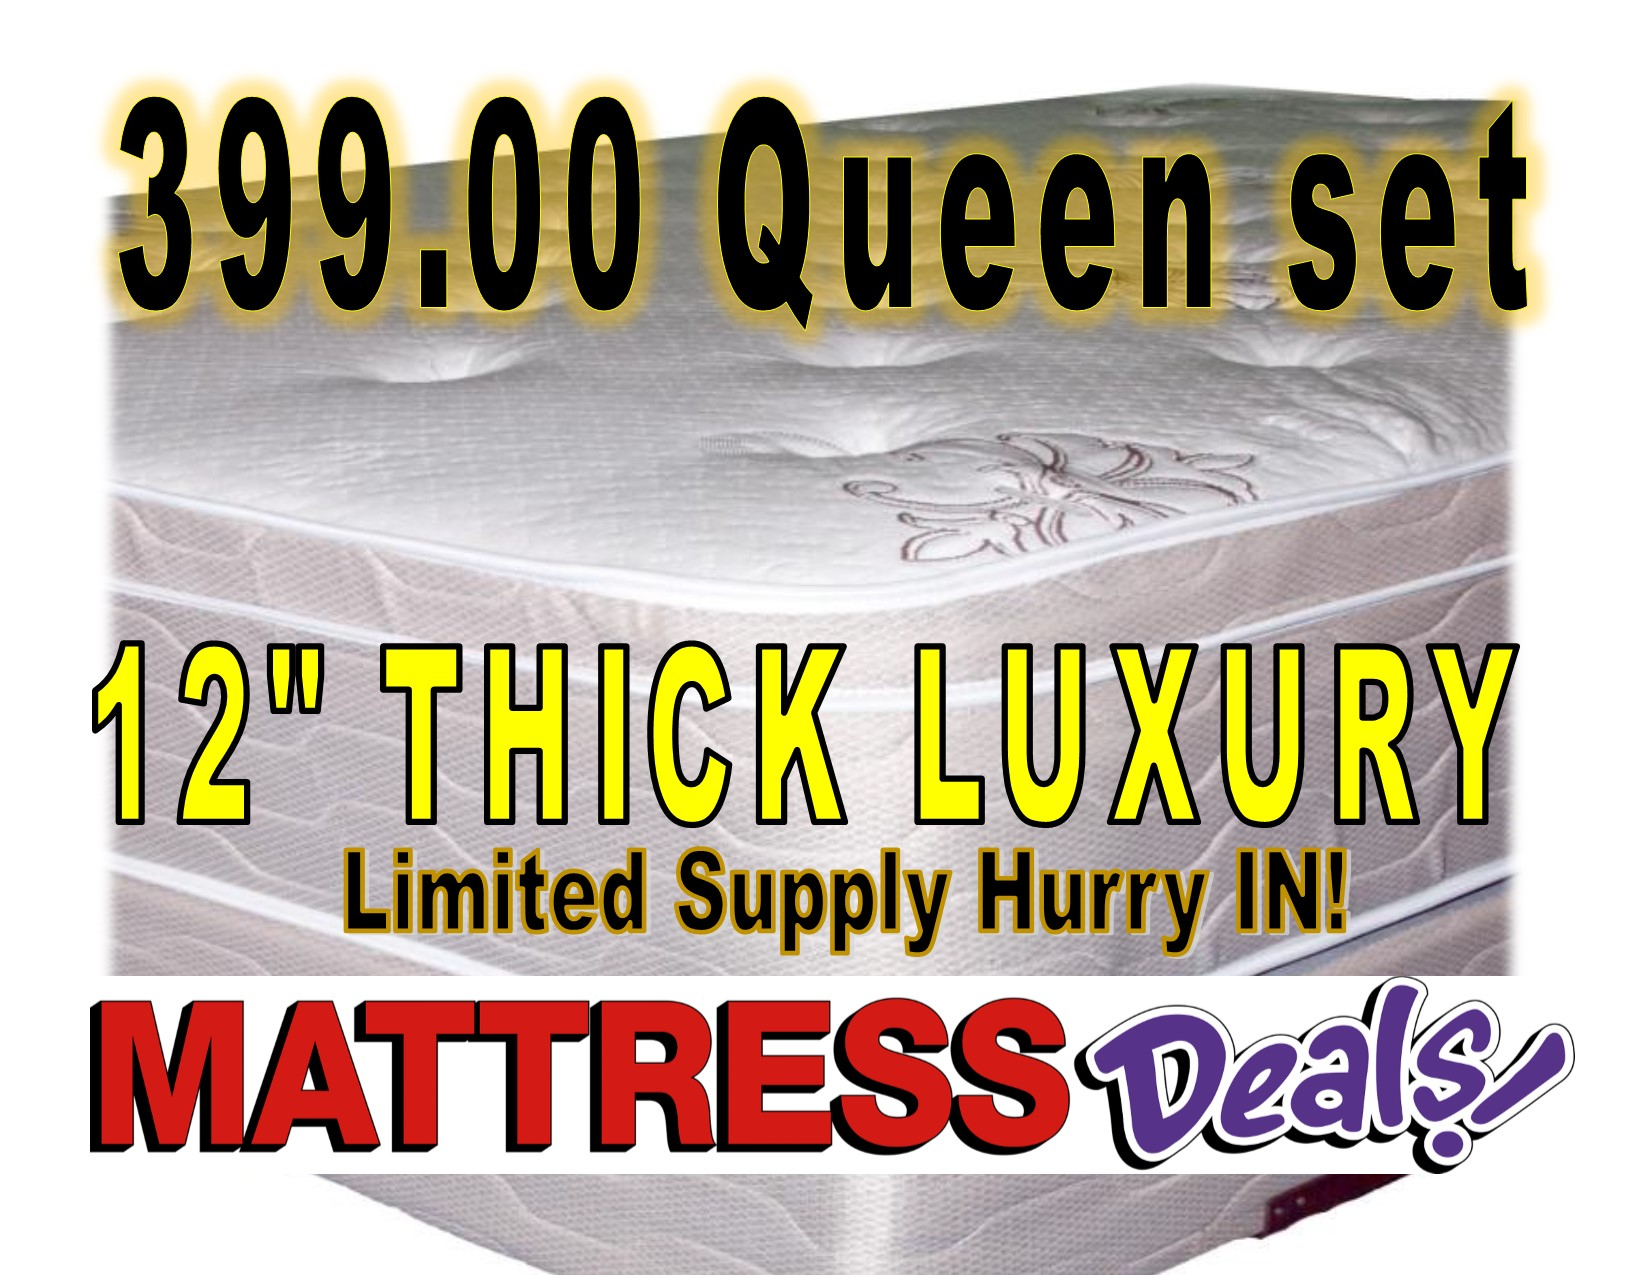 Mattress Deals image 95